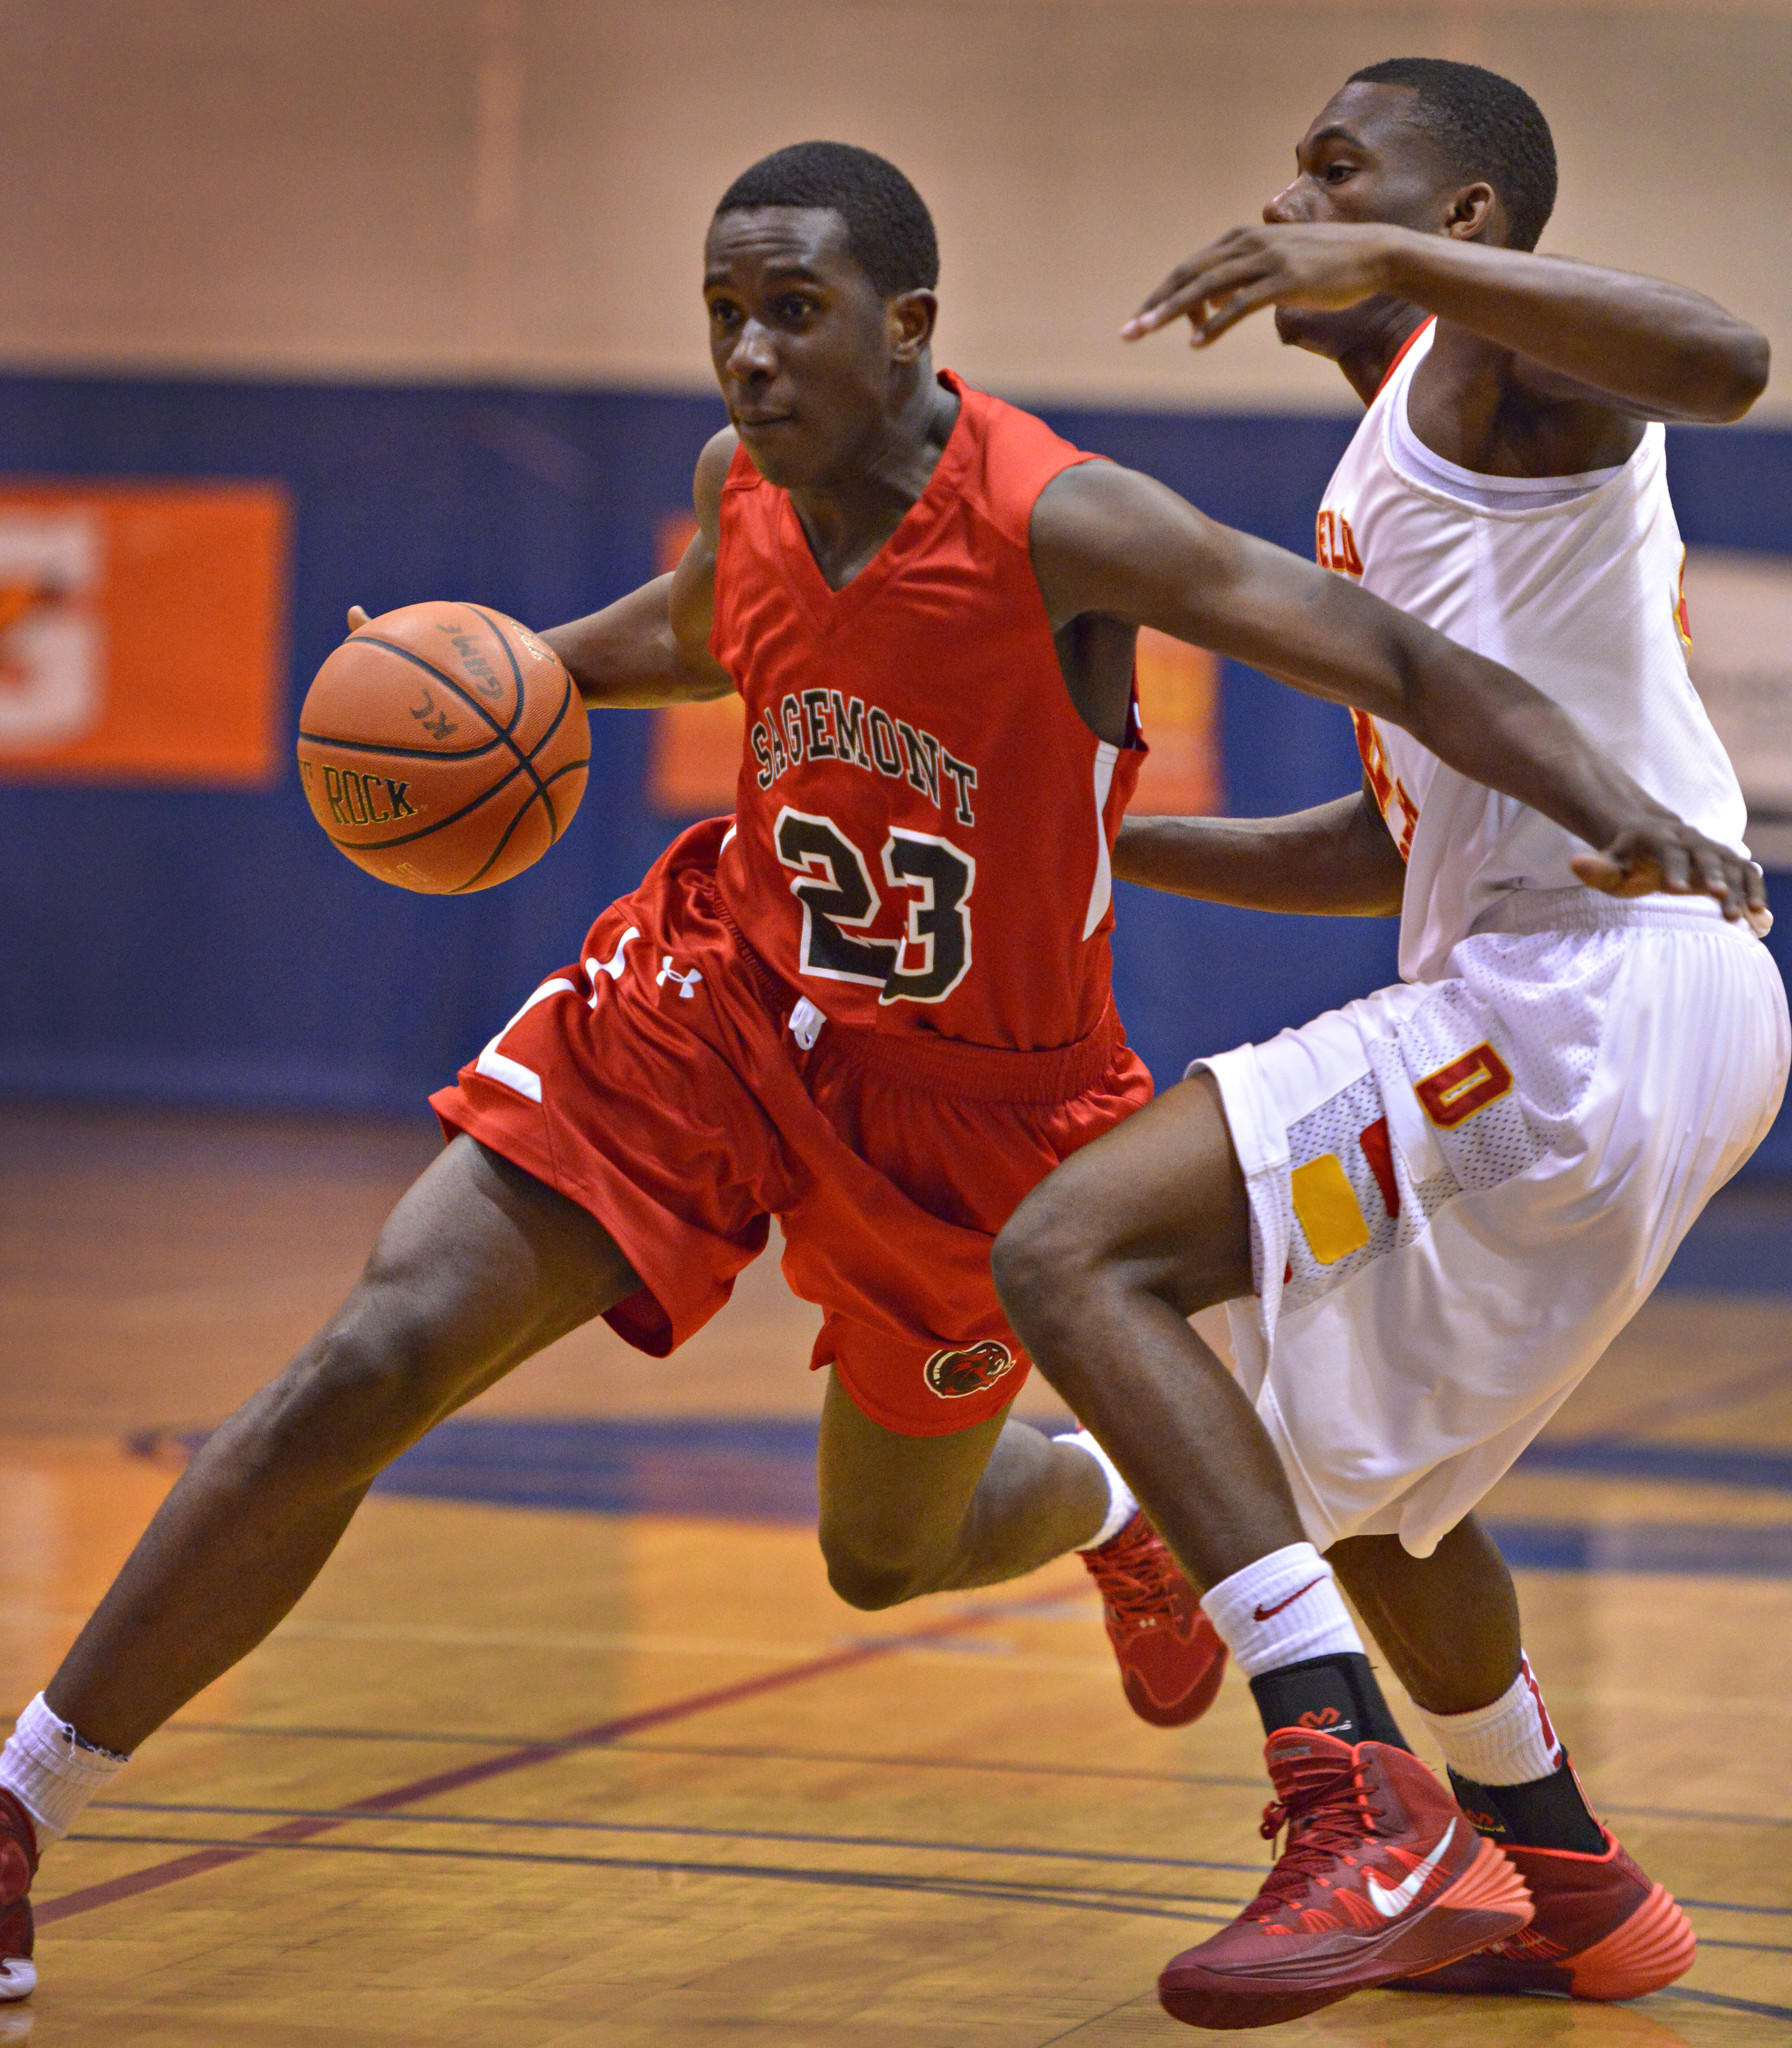 The Sagemont boys basketball team, behind Prince Ali, sits atop the Sun Sentinel rankings this week.